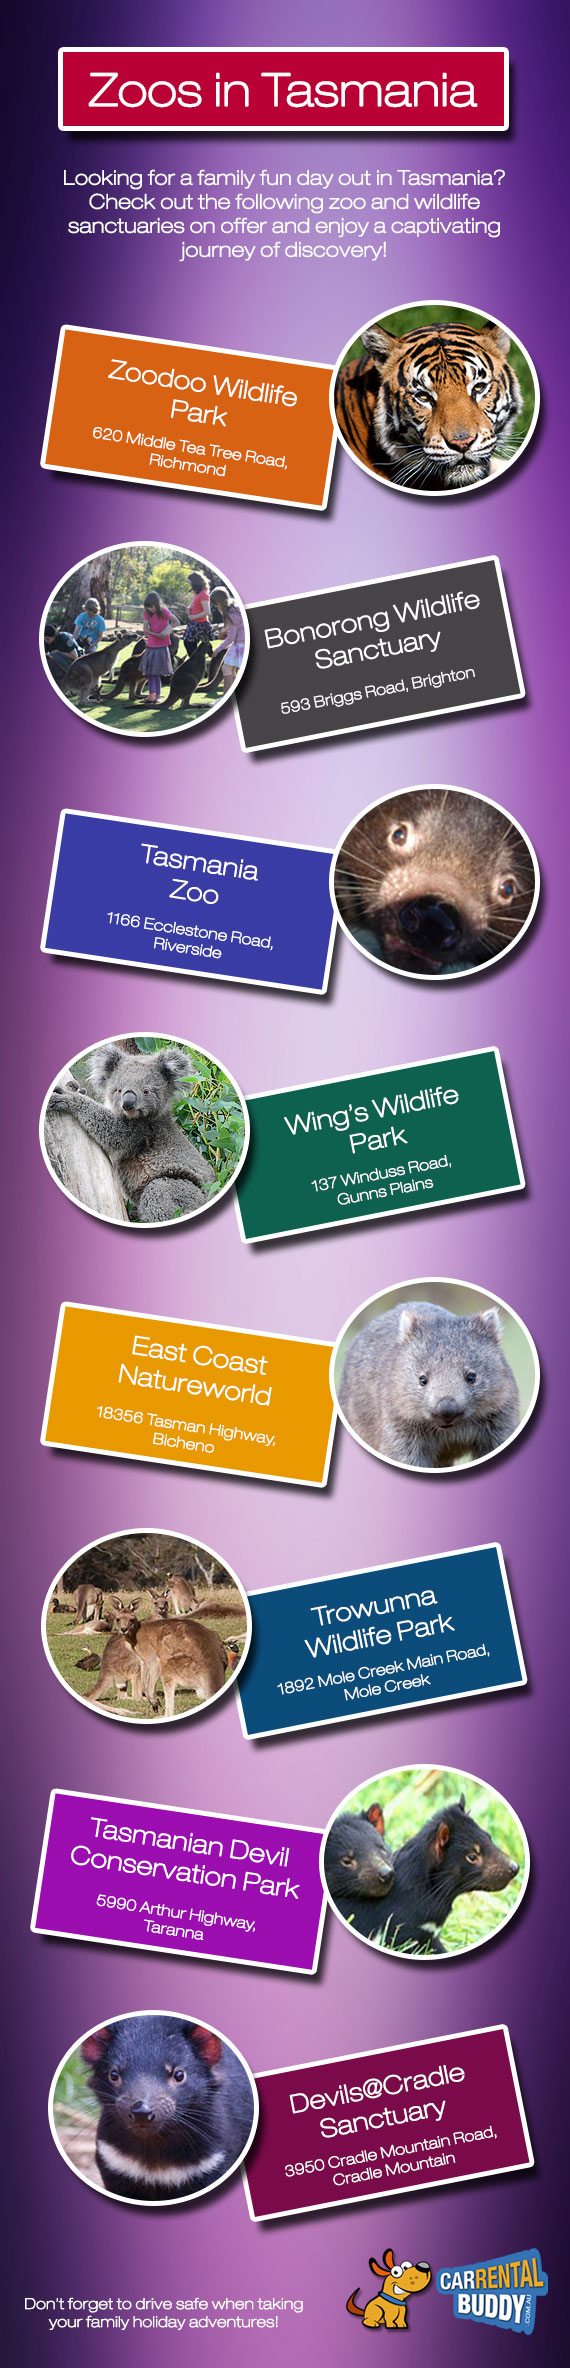 Check Out These Top Zoo Attractions in Tasmania